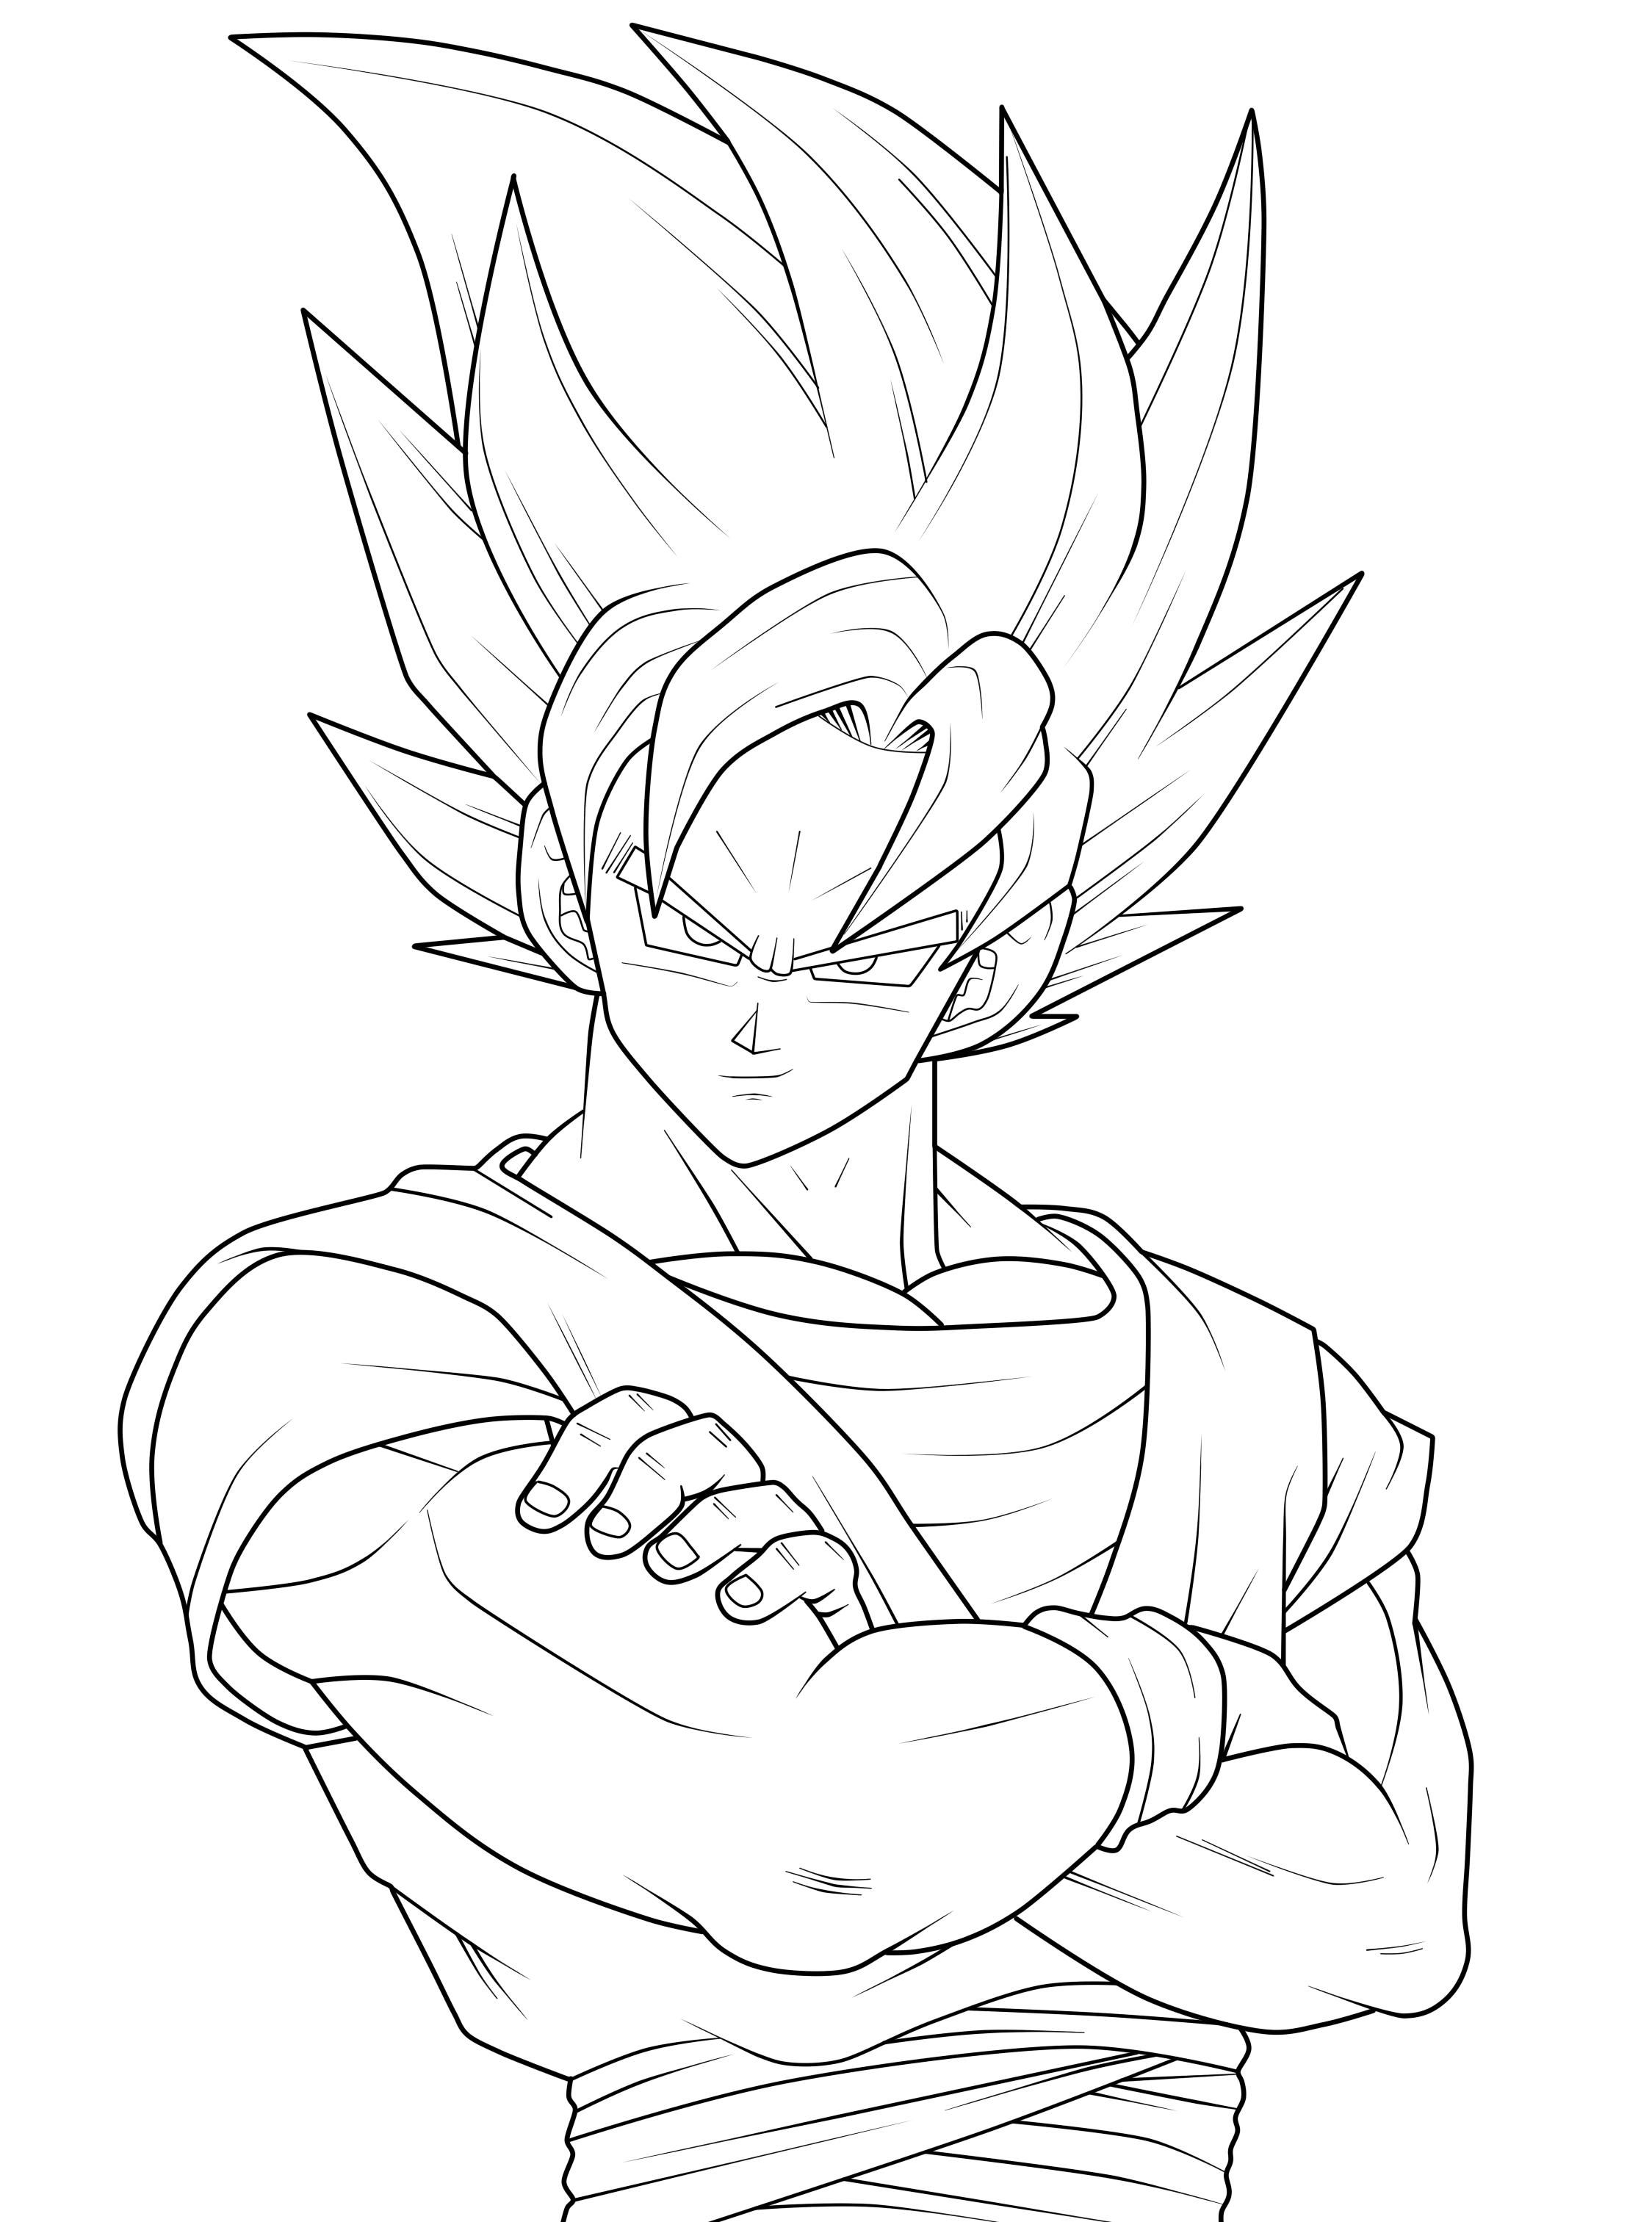 Coloring Pages Goku Printable Coloring Pages For Kids Dragon Ball Artwork Dragon Ball Art Goku Drawing